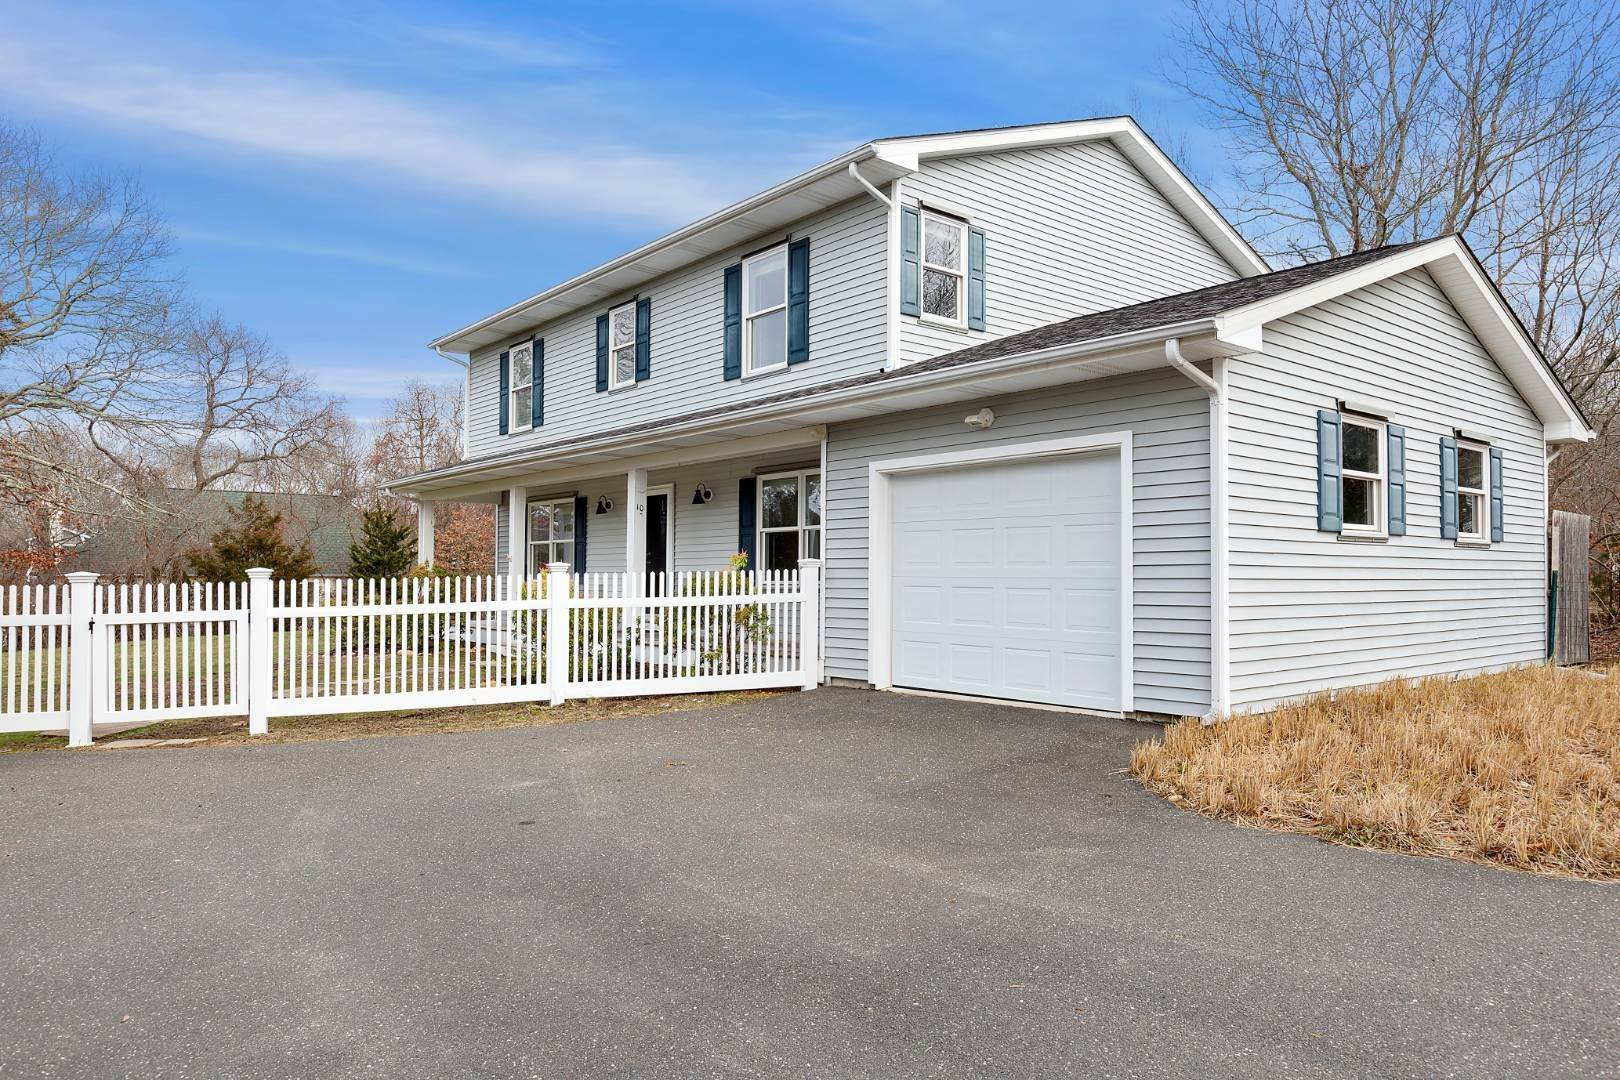 Single Family Home for Sale at Hilltop Traditional, Like New 10 Bay View Ave, East Hampton, NY 11937